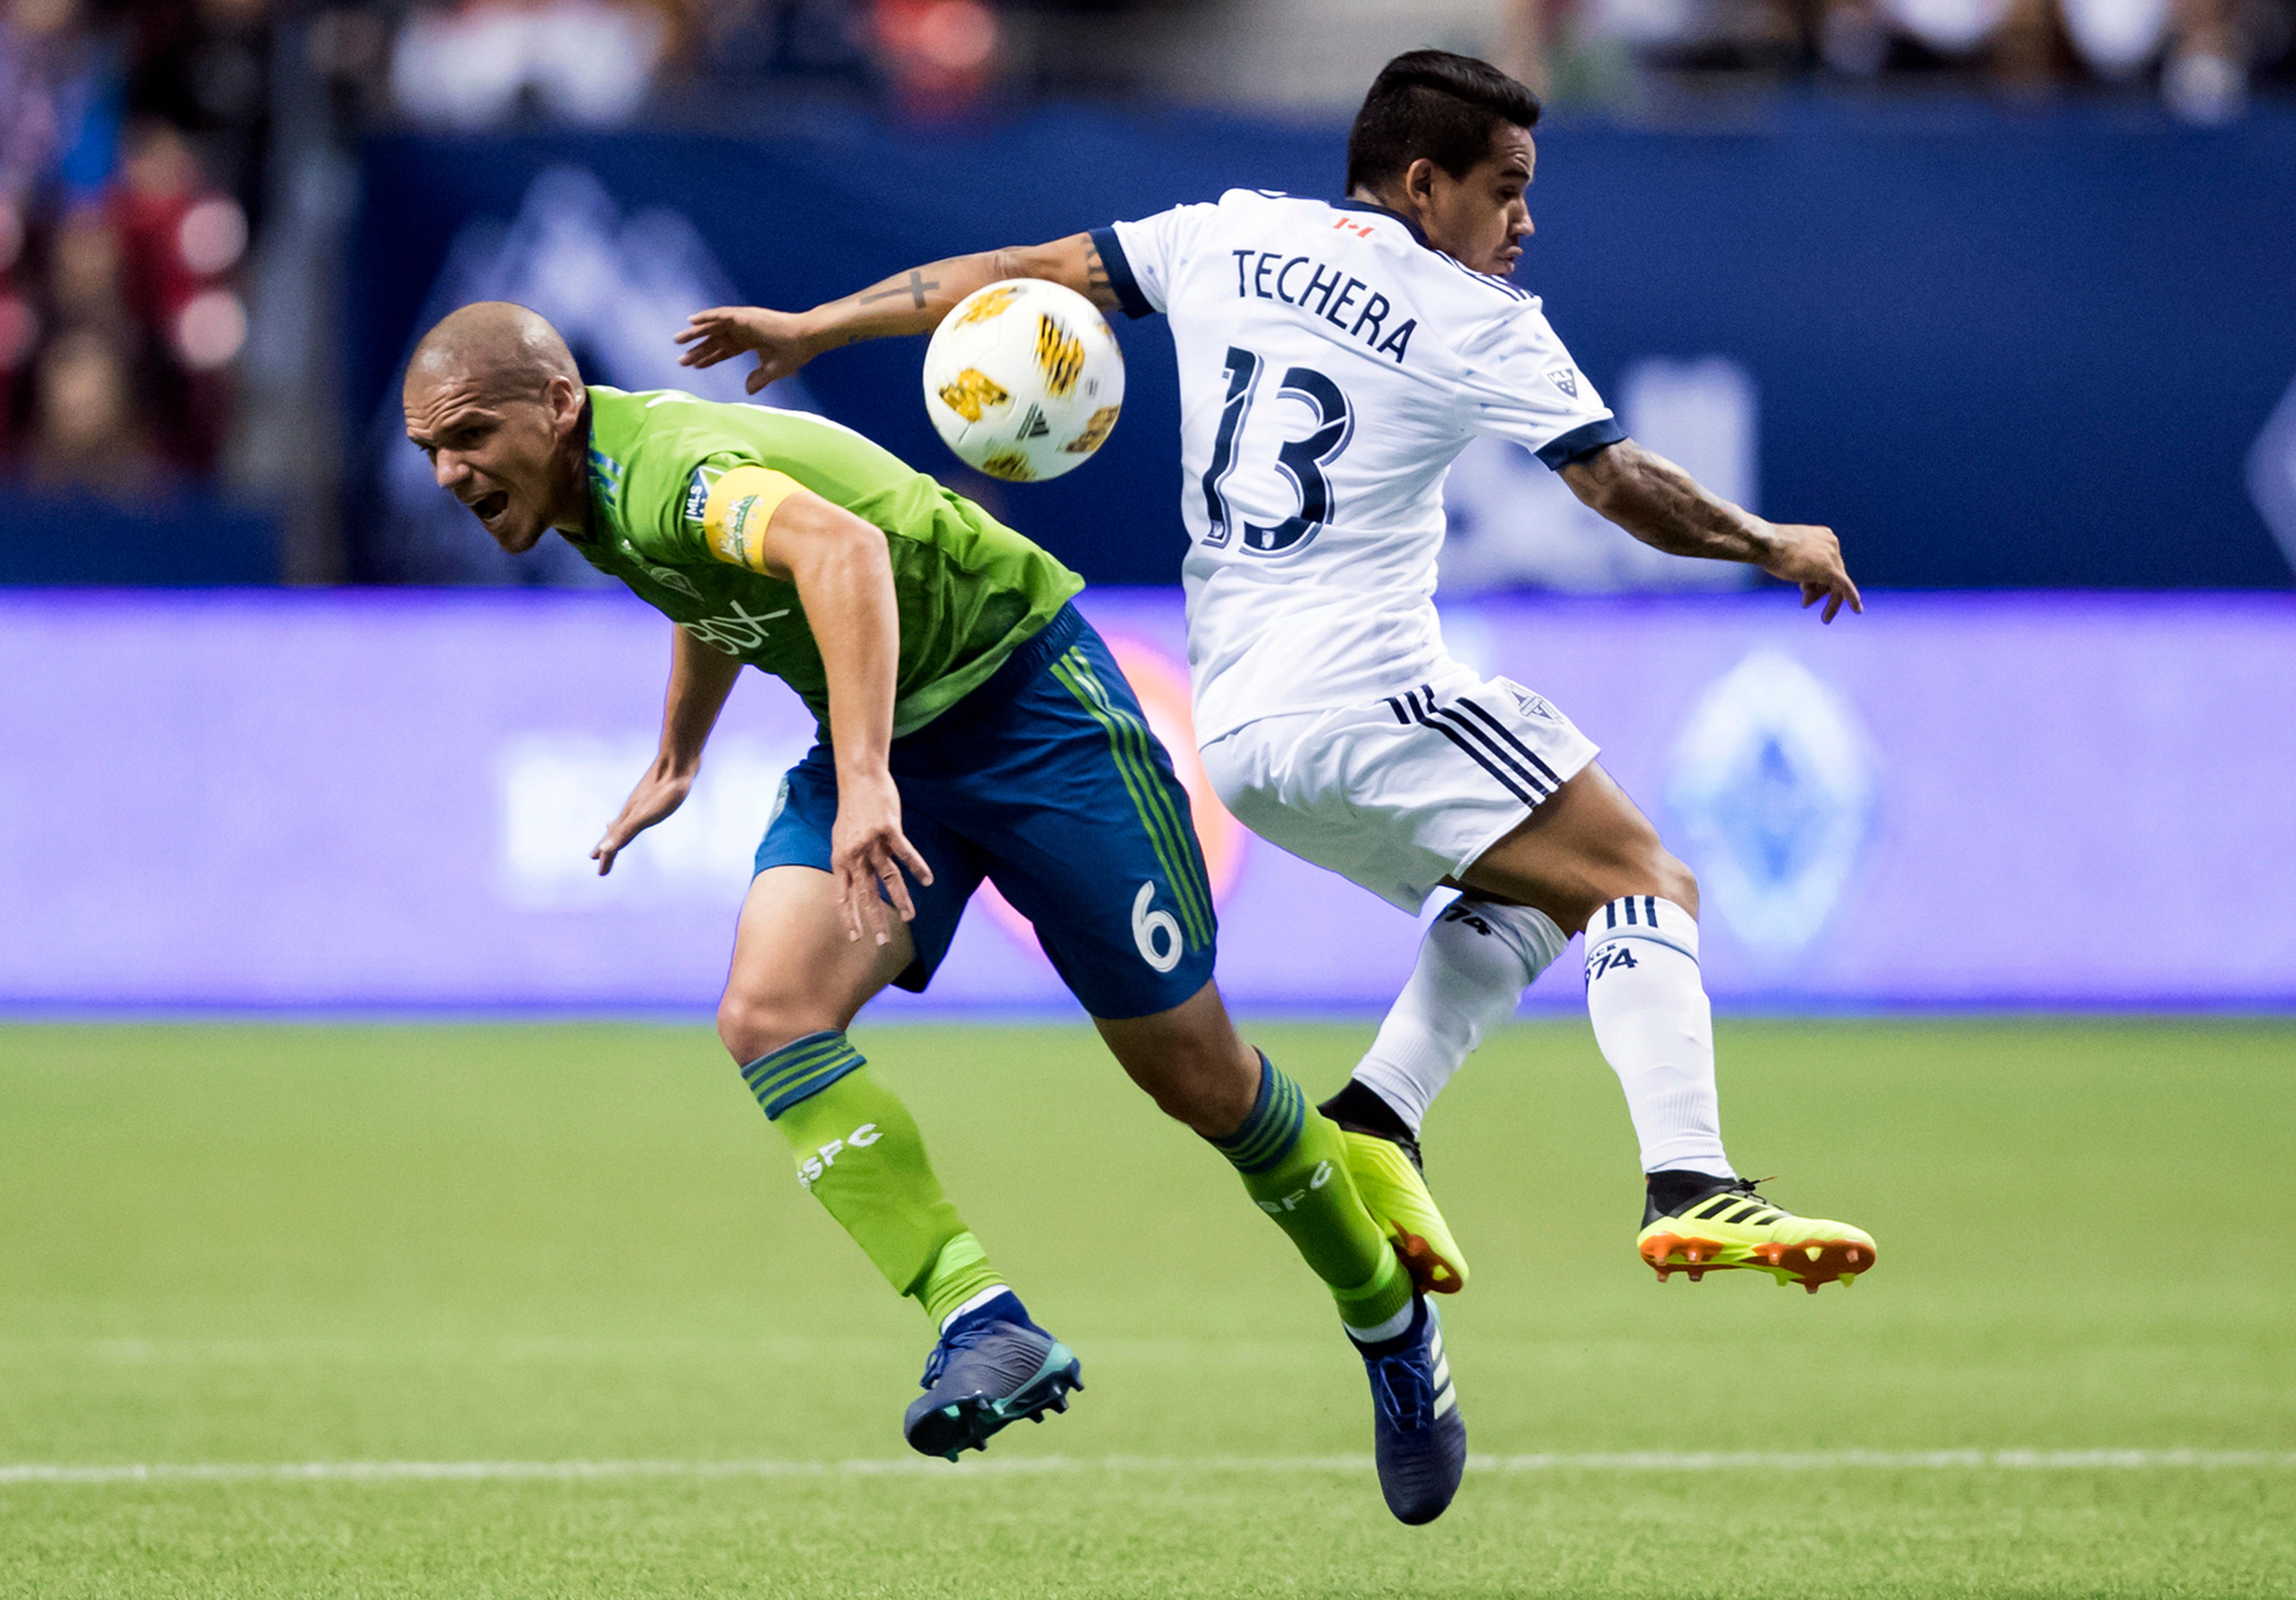 Seattle Sounders' Osvaldo Alonso (6) and Vancouver Whitecaps' Cristian Techera (13) collide during the first half of an MLS soccer match, Saturday, Sept. 15, 2018, in Vancouver, British Columbia. (Darryl Dyck/The Canadian Press via AP)